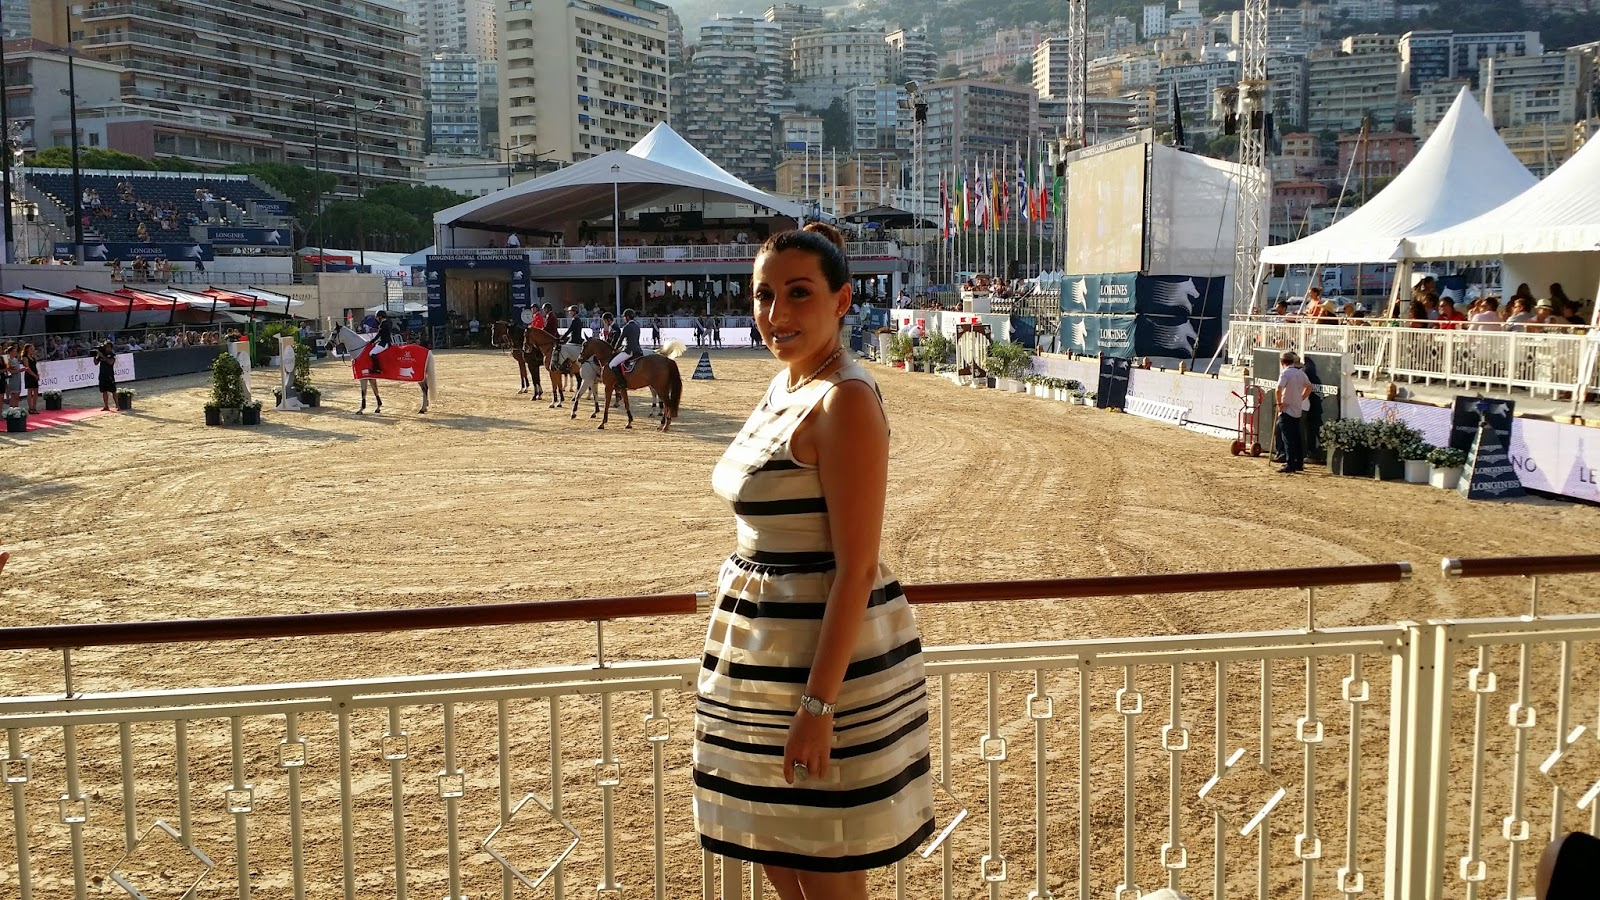 LONGINES Conquest, Global Champions Tour 2014 Montecarlo, pro-am cup, equitazione, show jumping, veronica cristino, veronique tres jolie